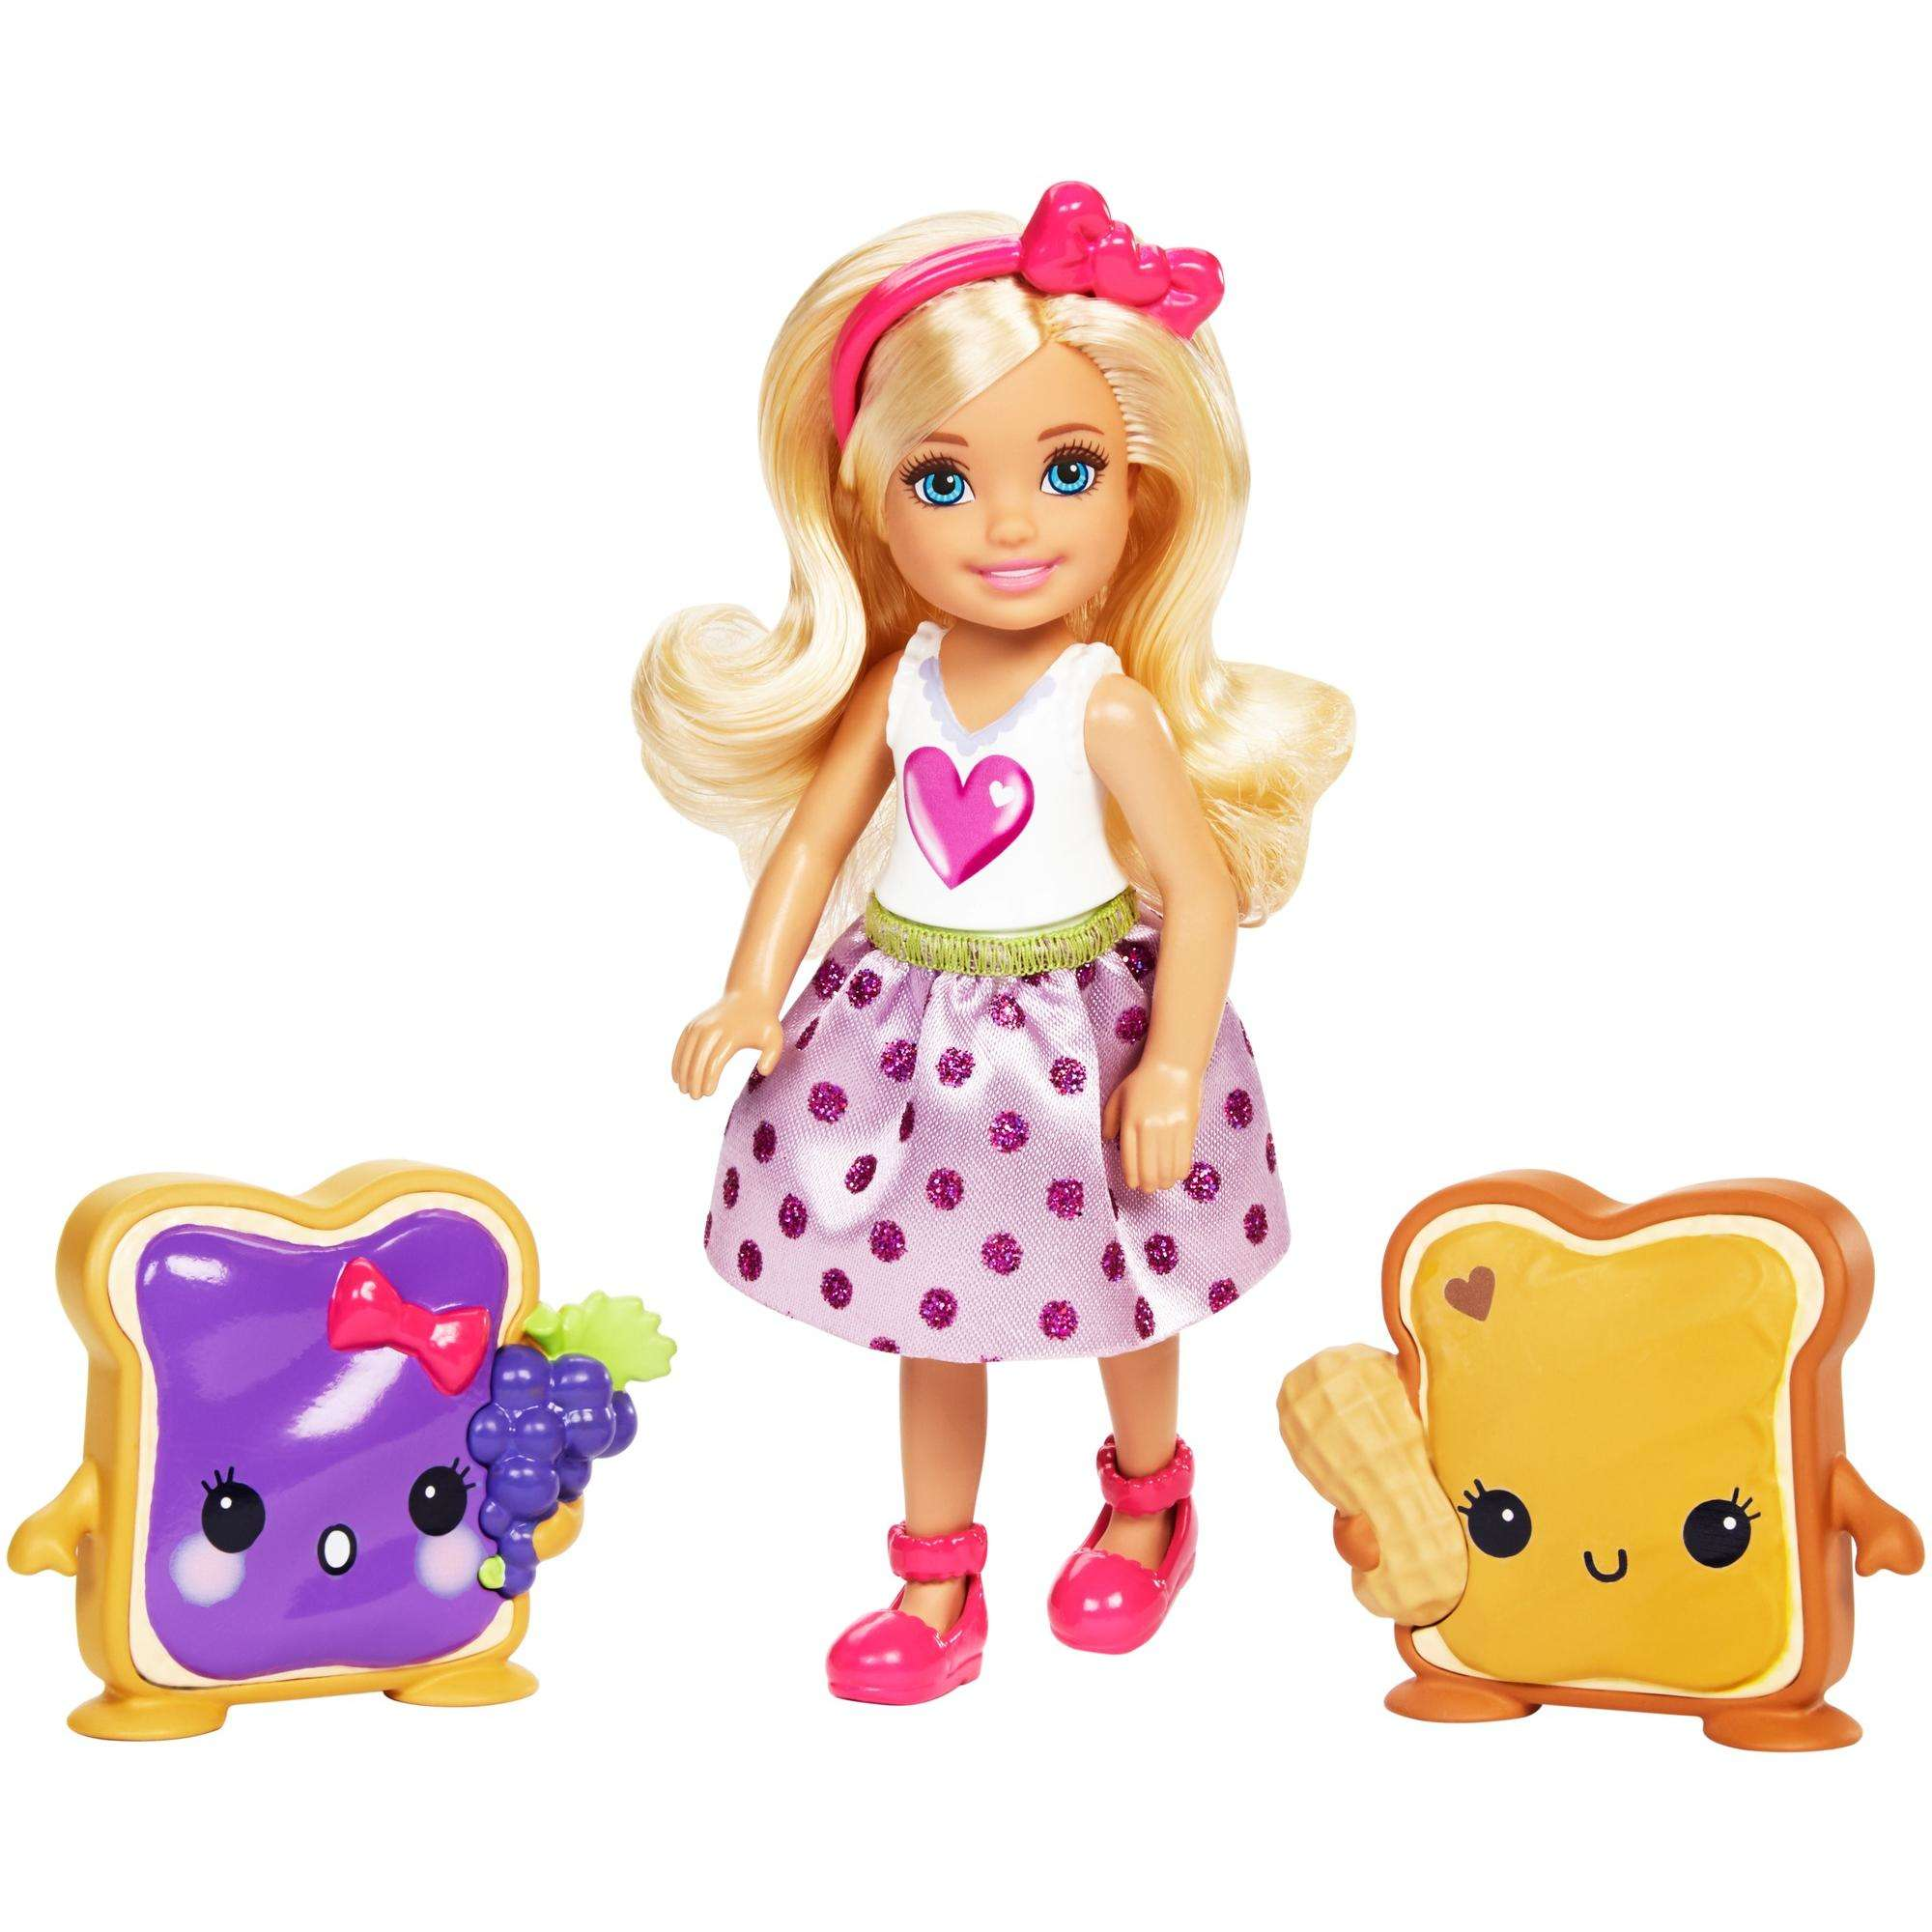 Barbie Dreamtopia Sweetville Chelsea and Sandwich Friend